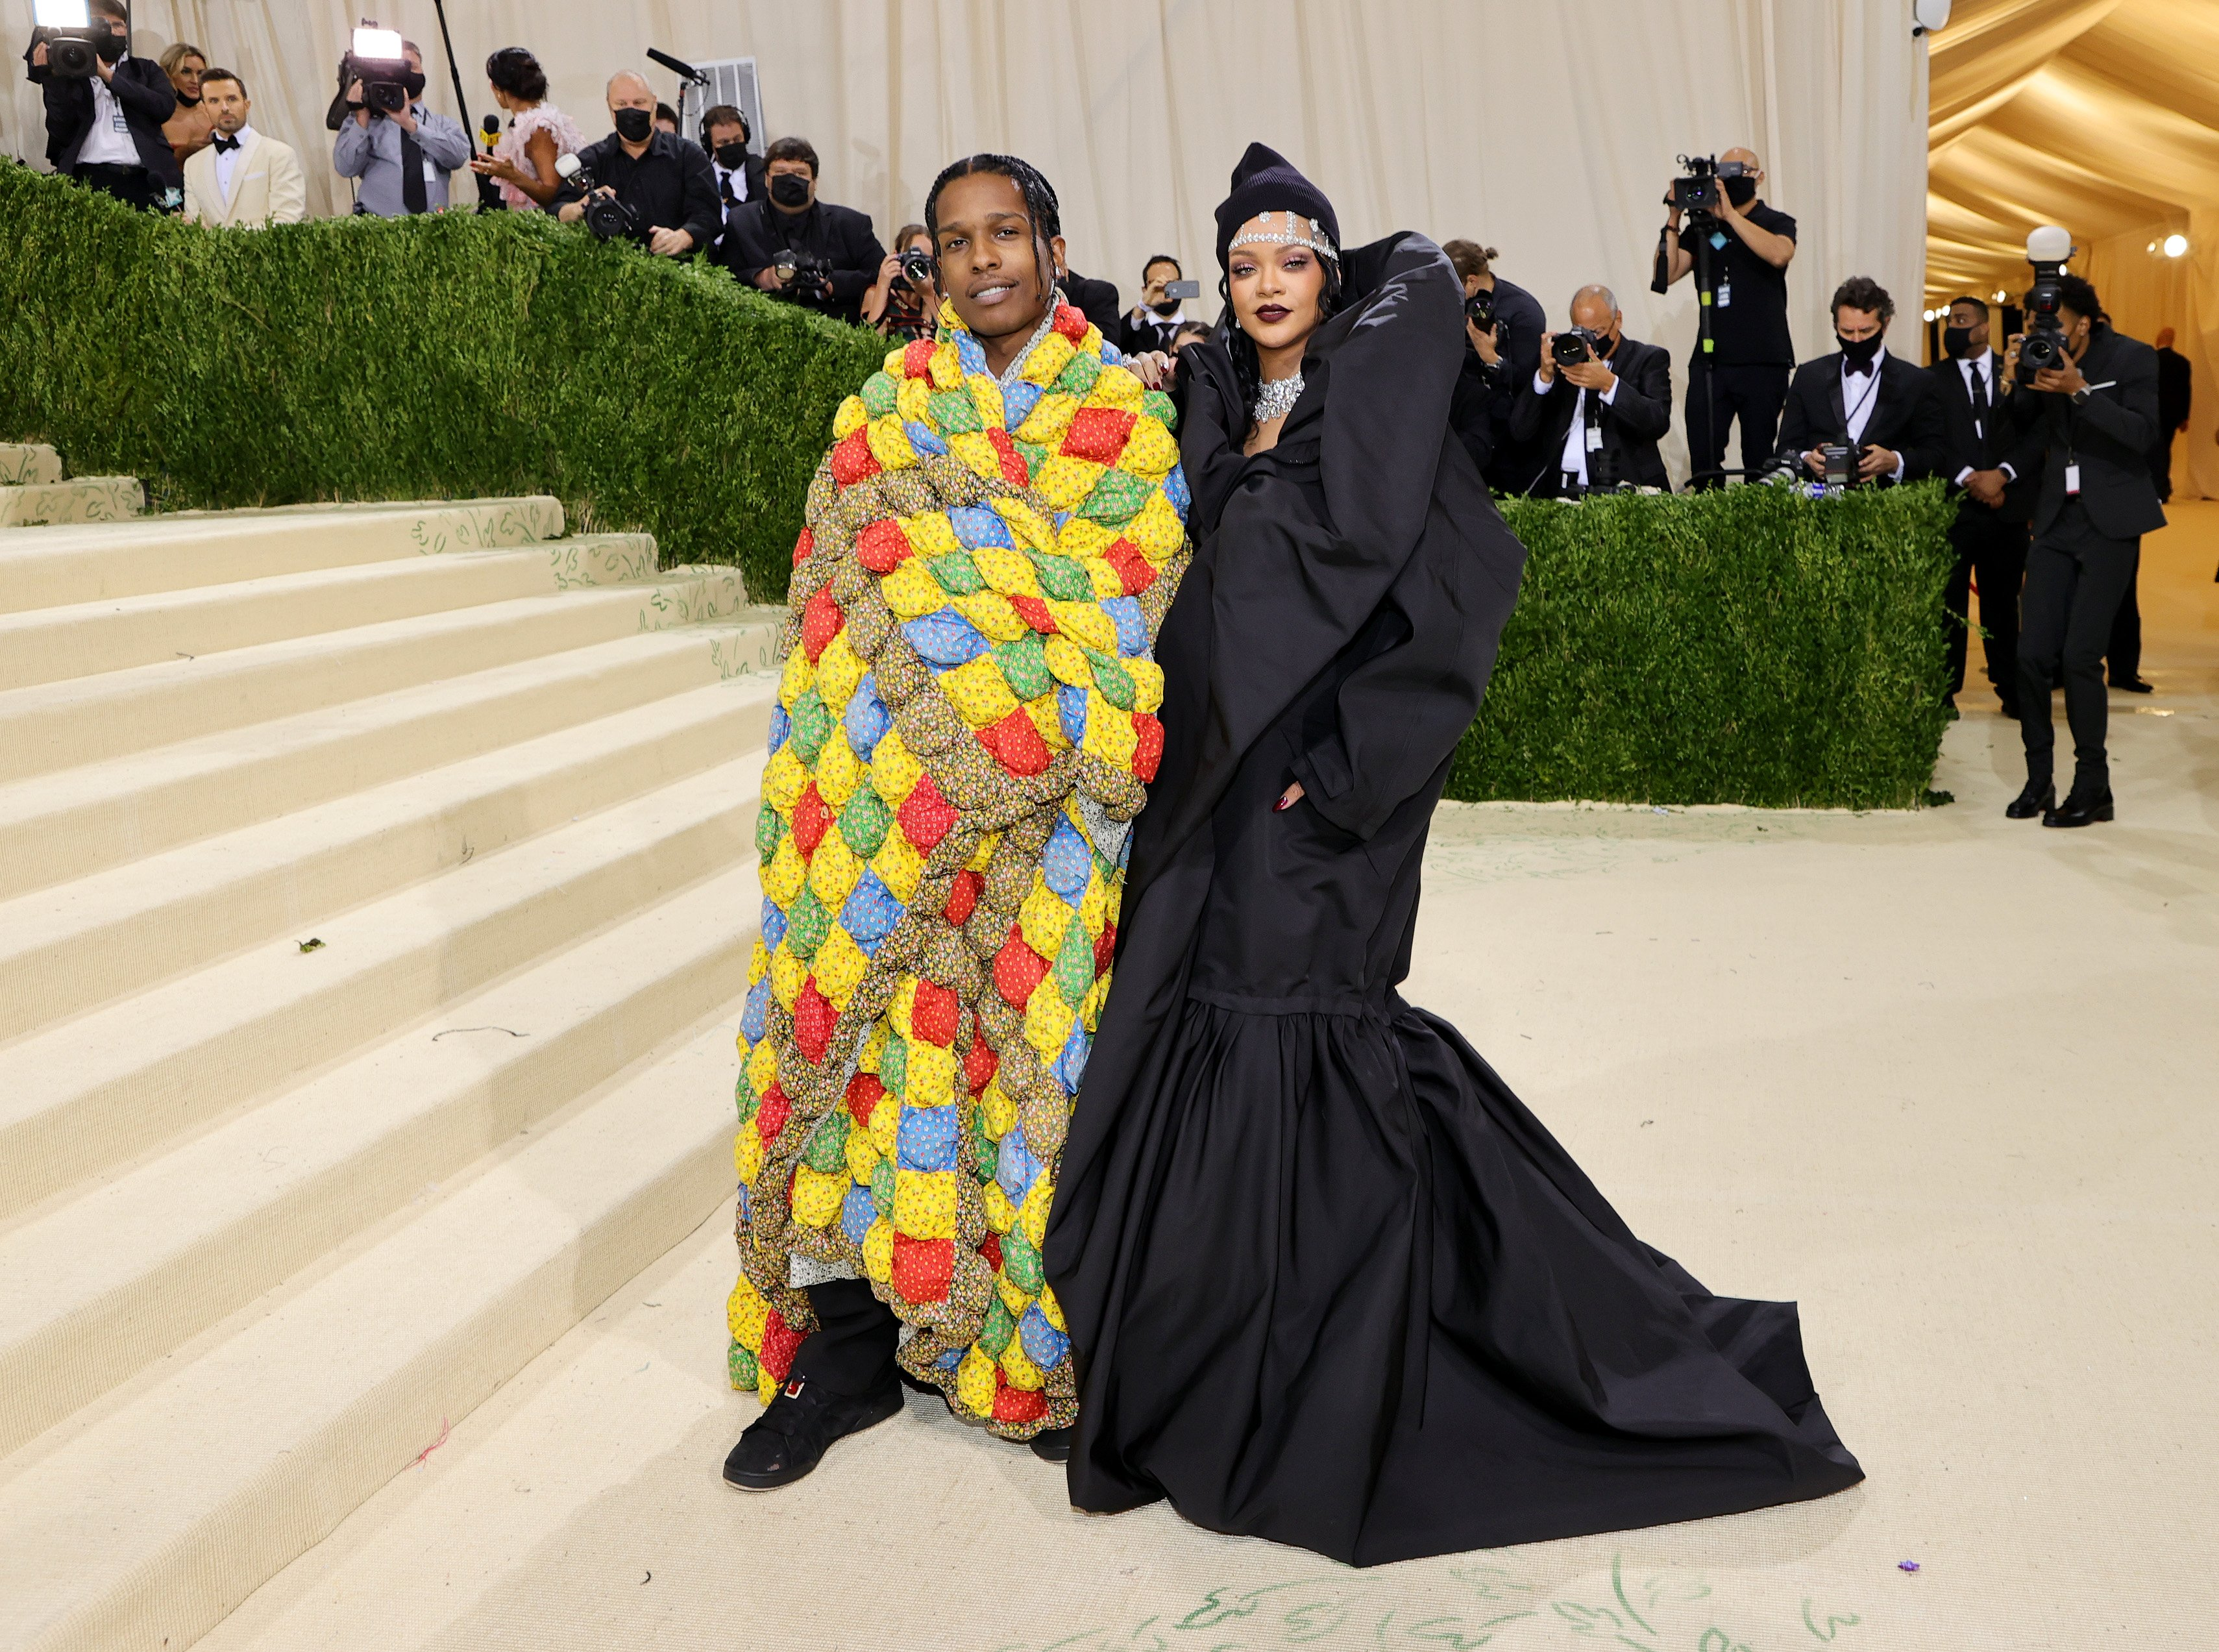 Rihanna and A$AP Rocky at the 2021 Met Gala in New York   Photo: Getty Images